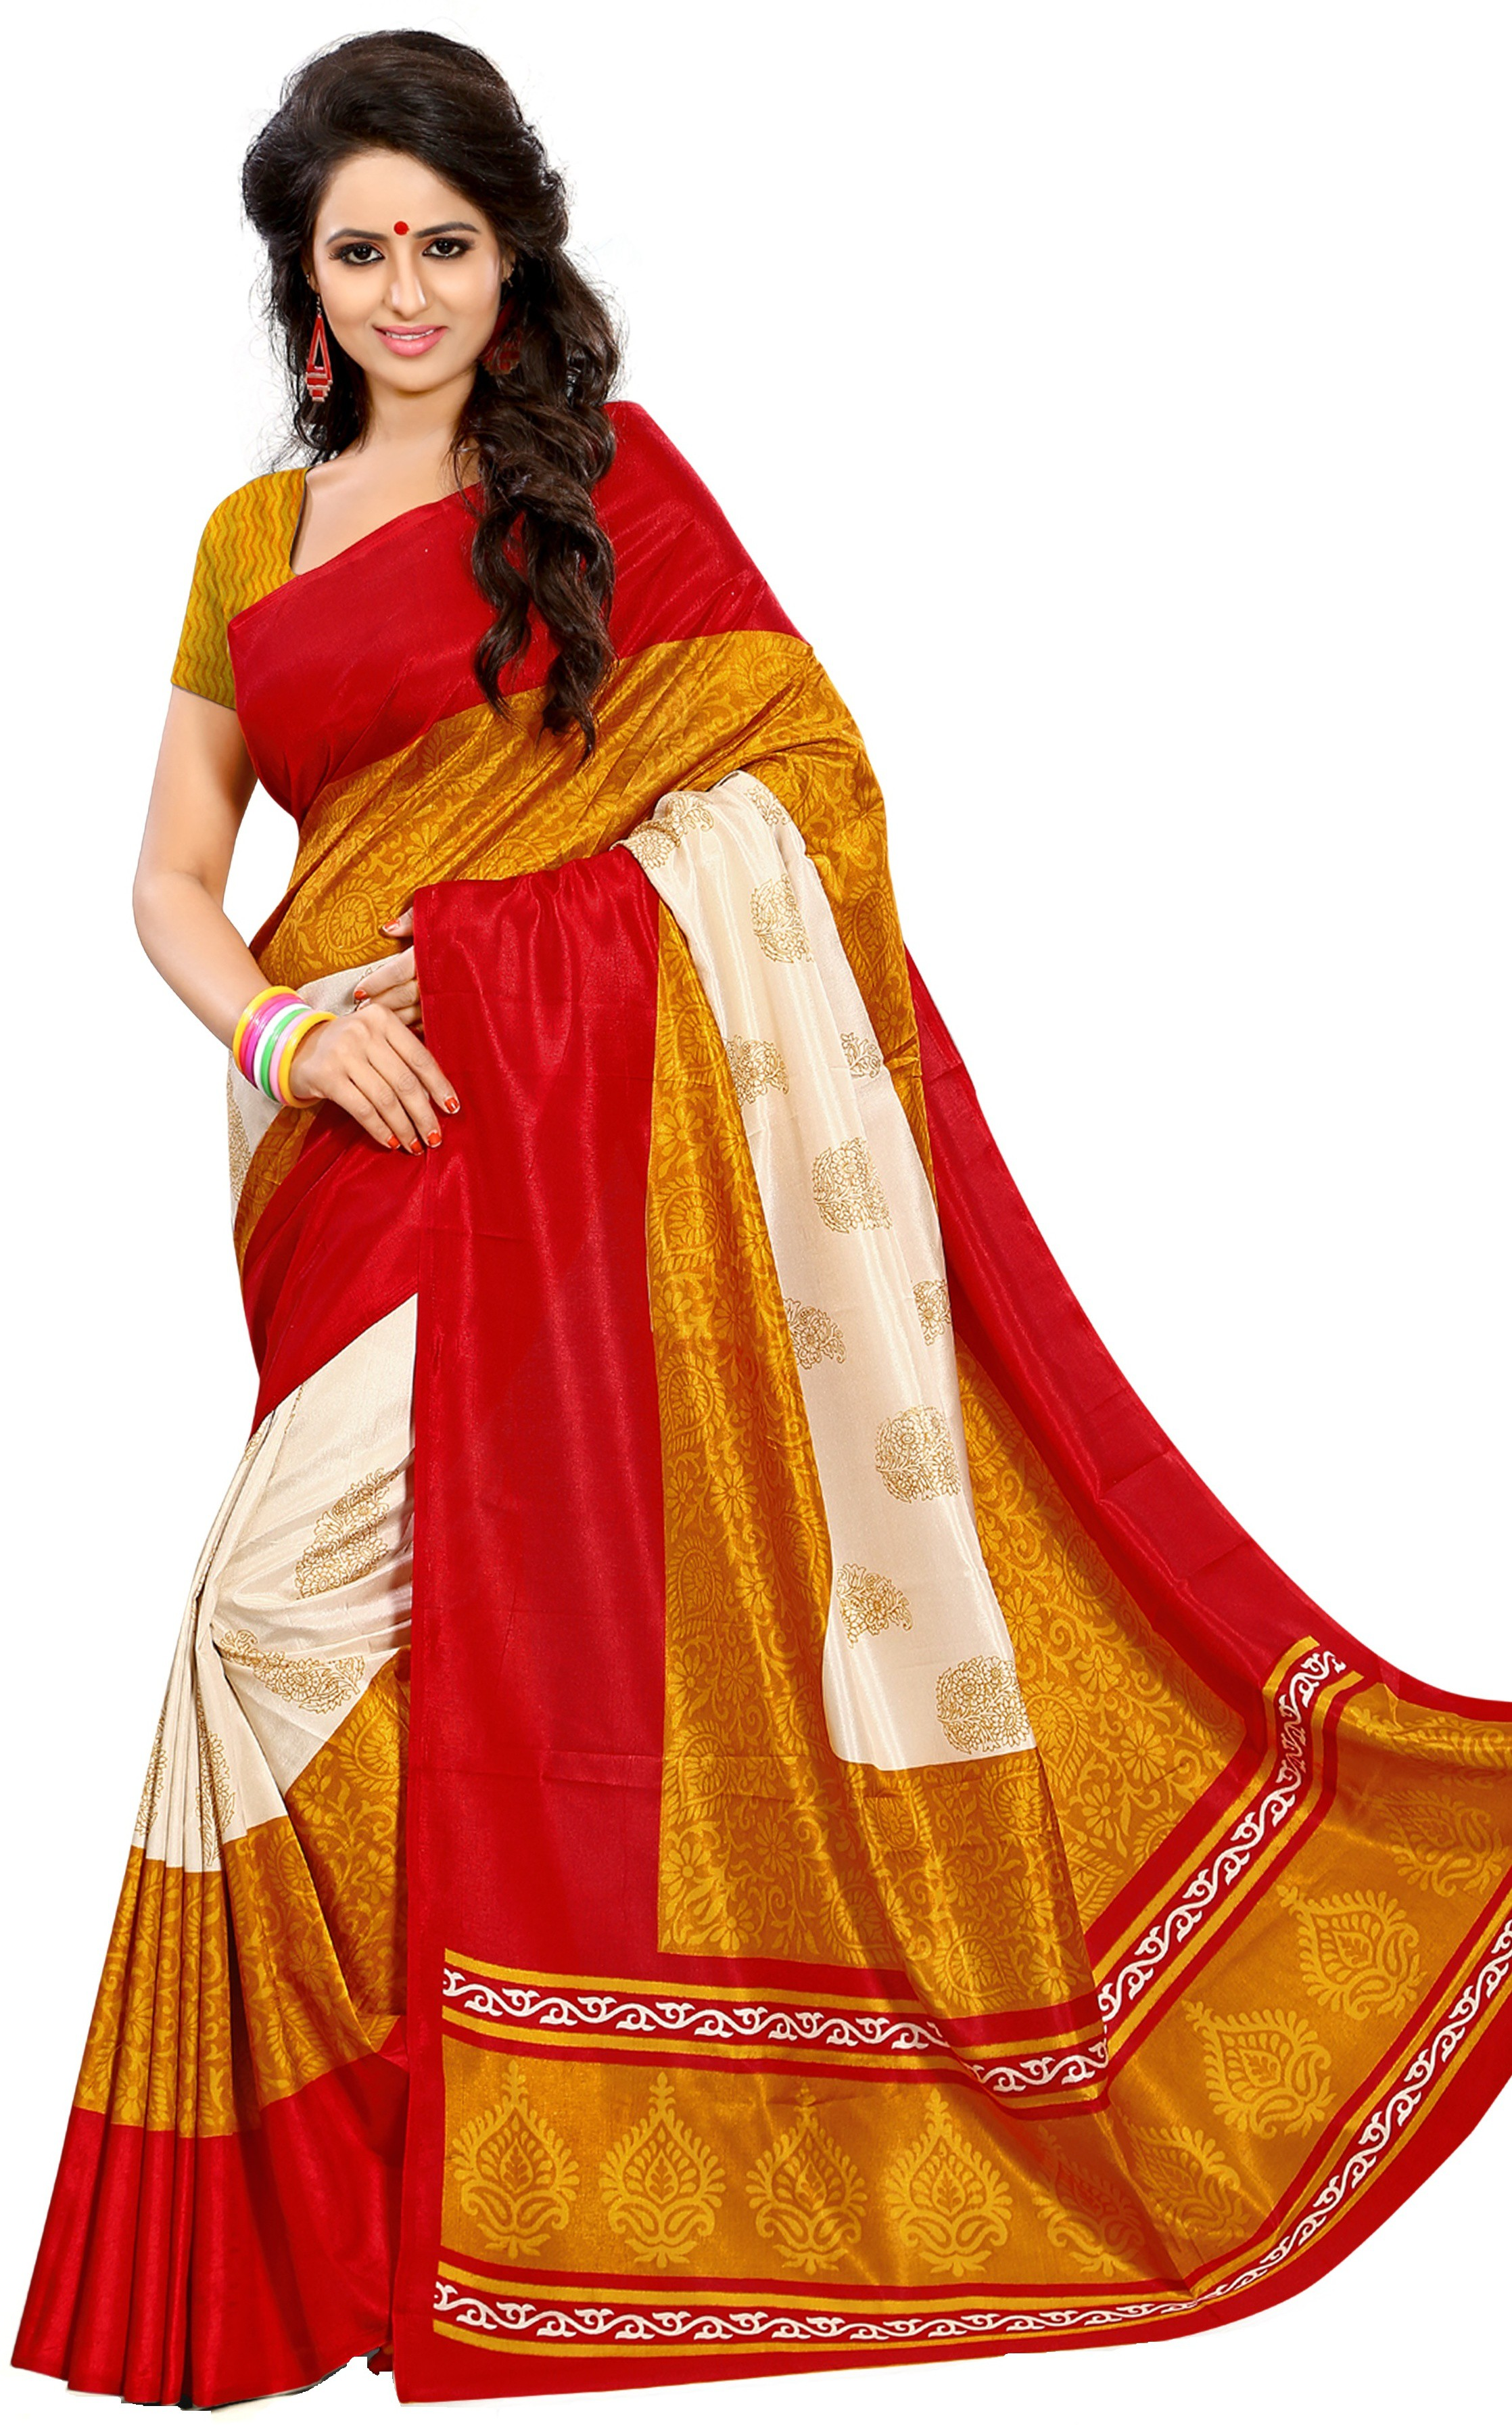 Deals - Bangalore - Under ₹799 <br> Chiffon, Banarasi Sarees.<br> Category - clothing<br> Business - Flipkart.com